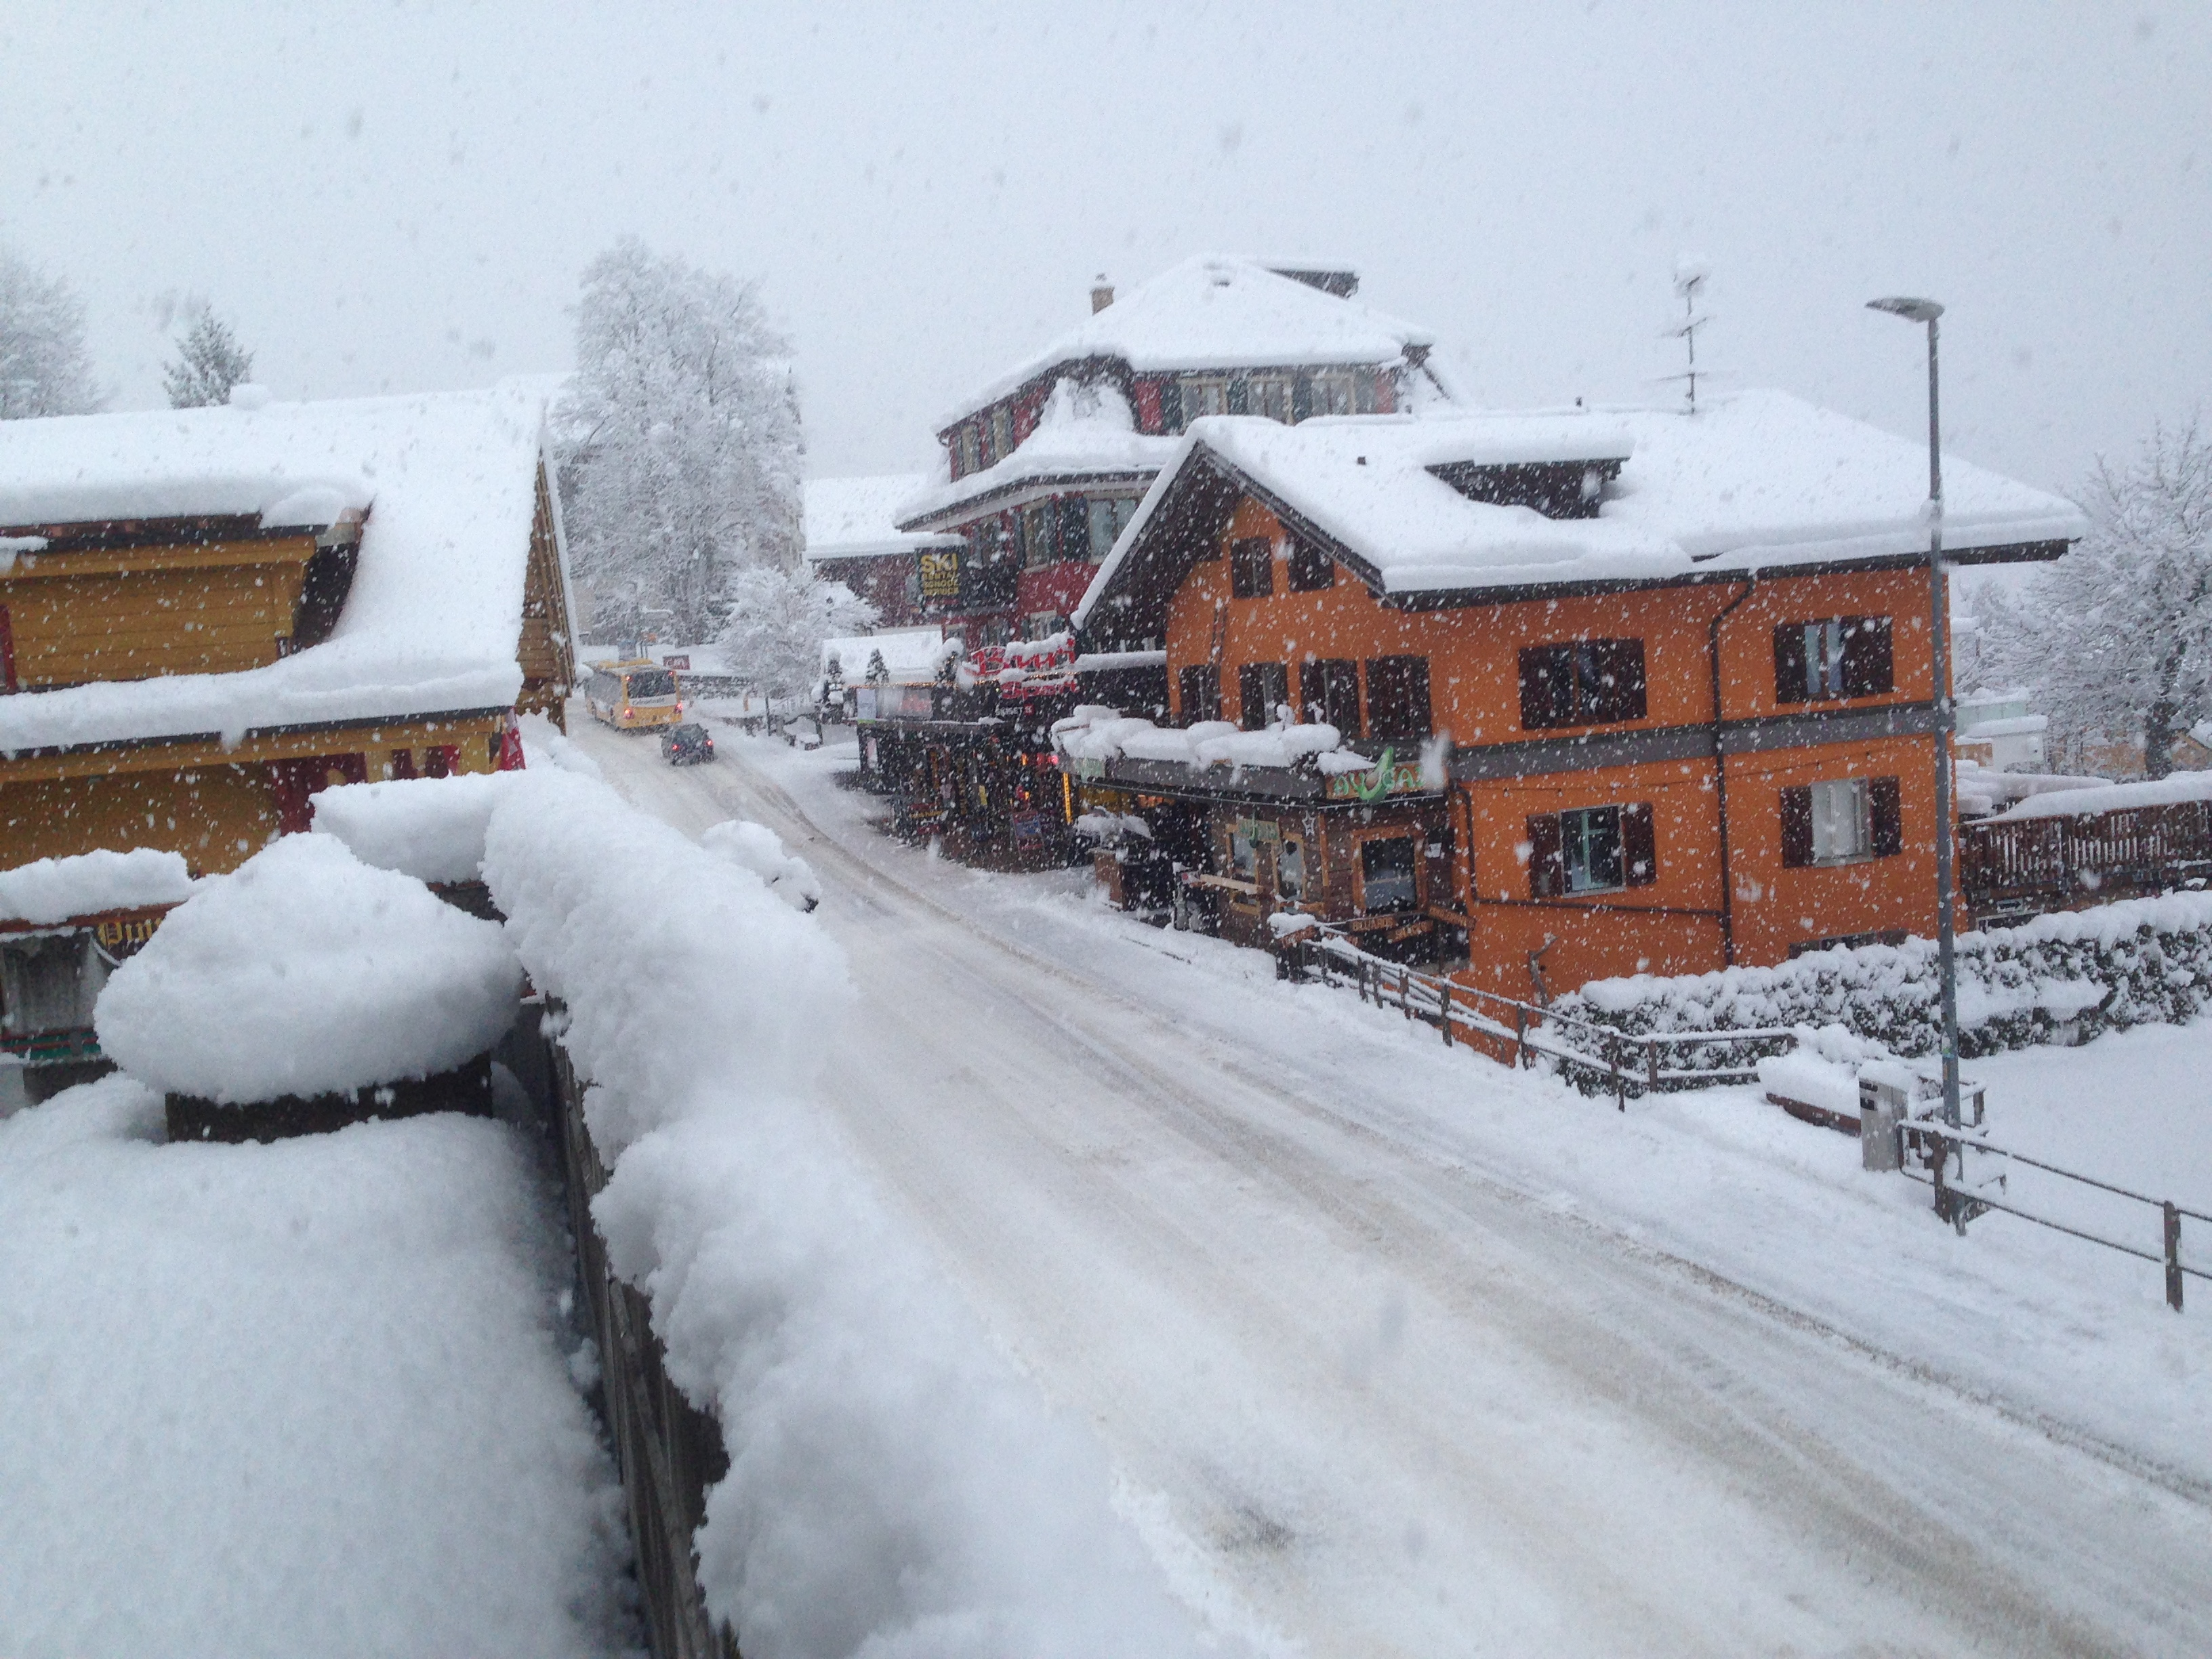 OUR VIEW, Grindelwald